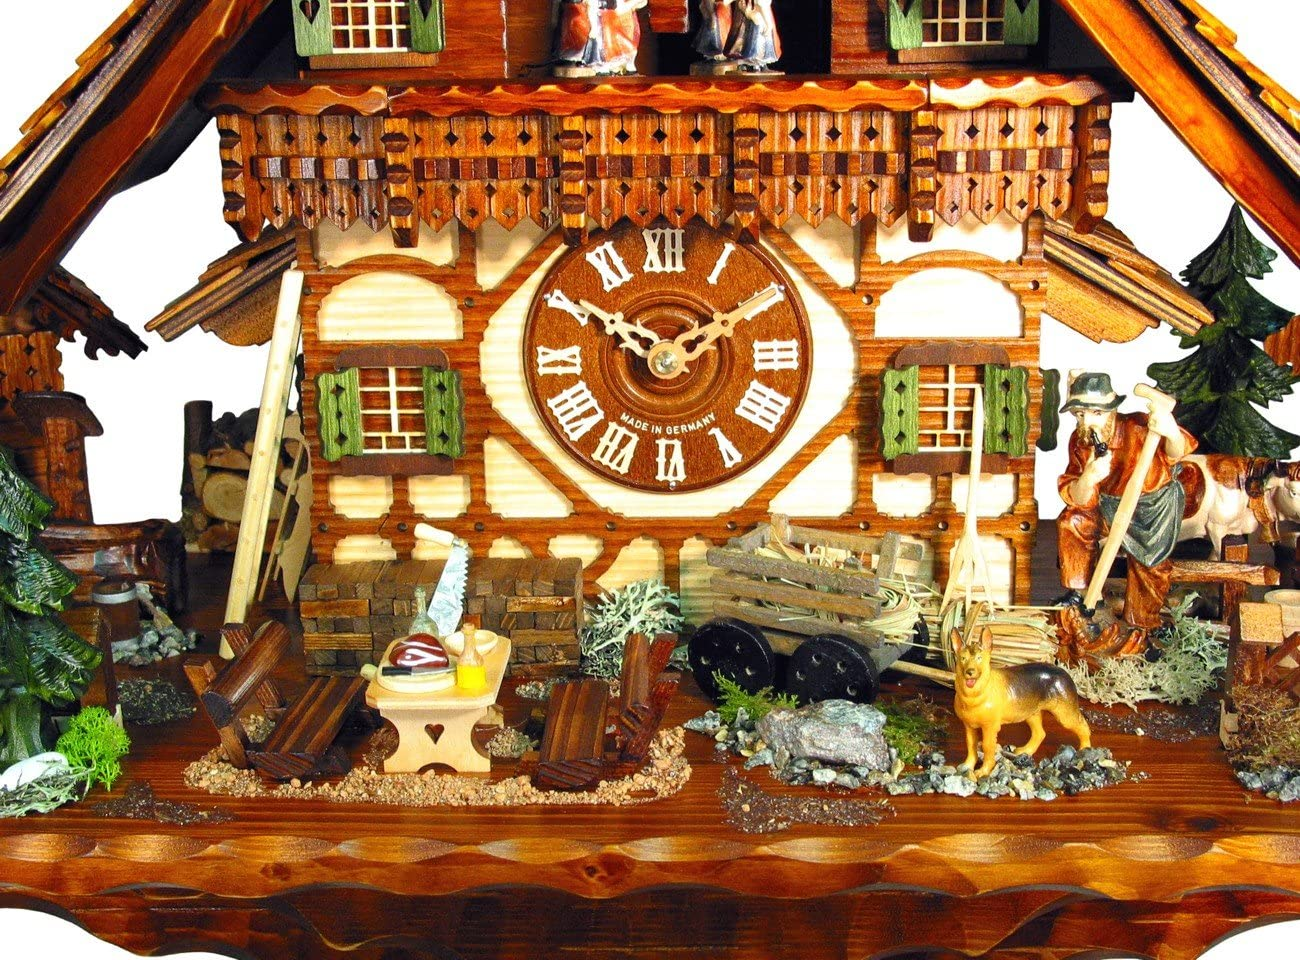 August Schwer Cuckoo Clock of The Year 2012 Farm of The Goatherd from August Schwer